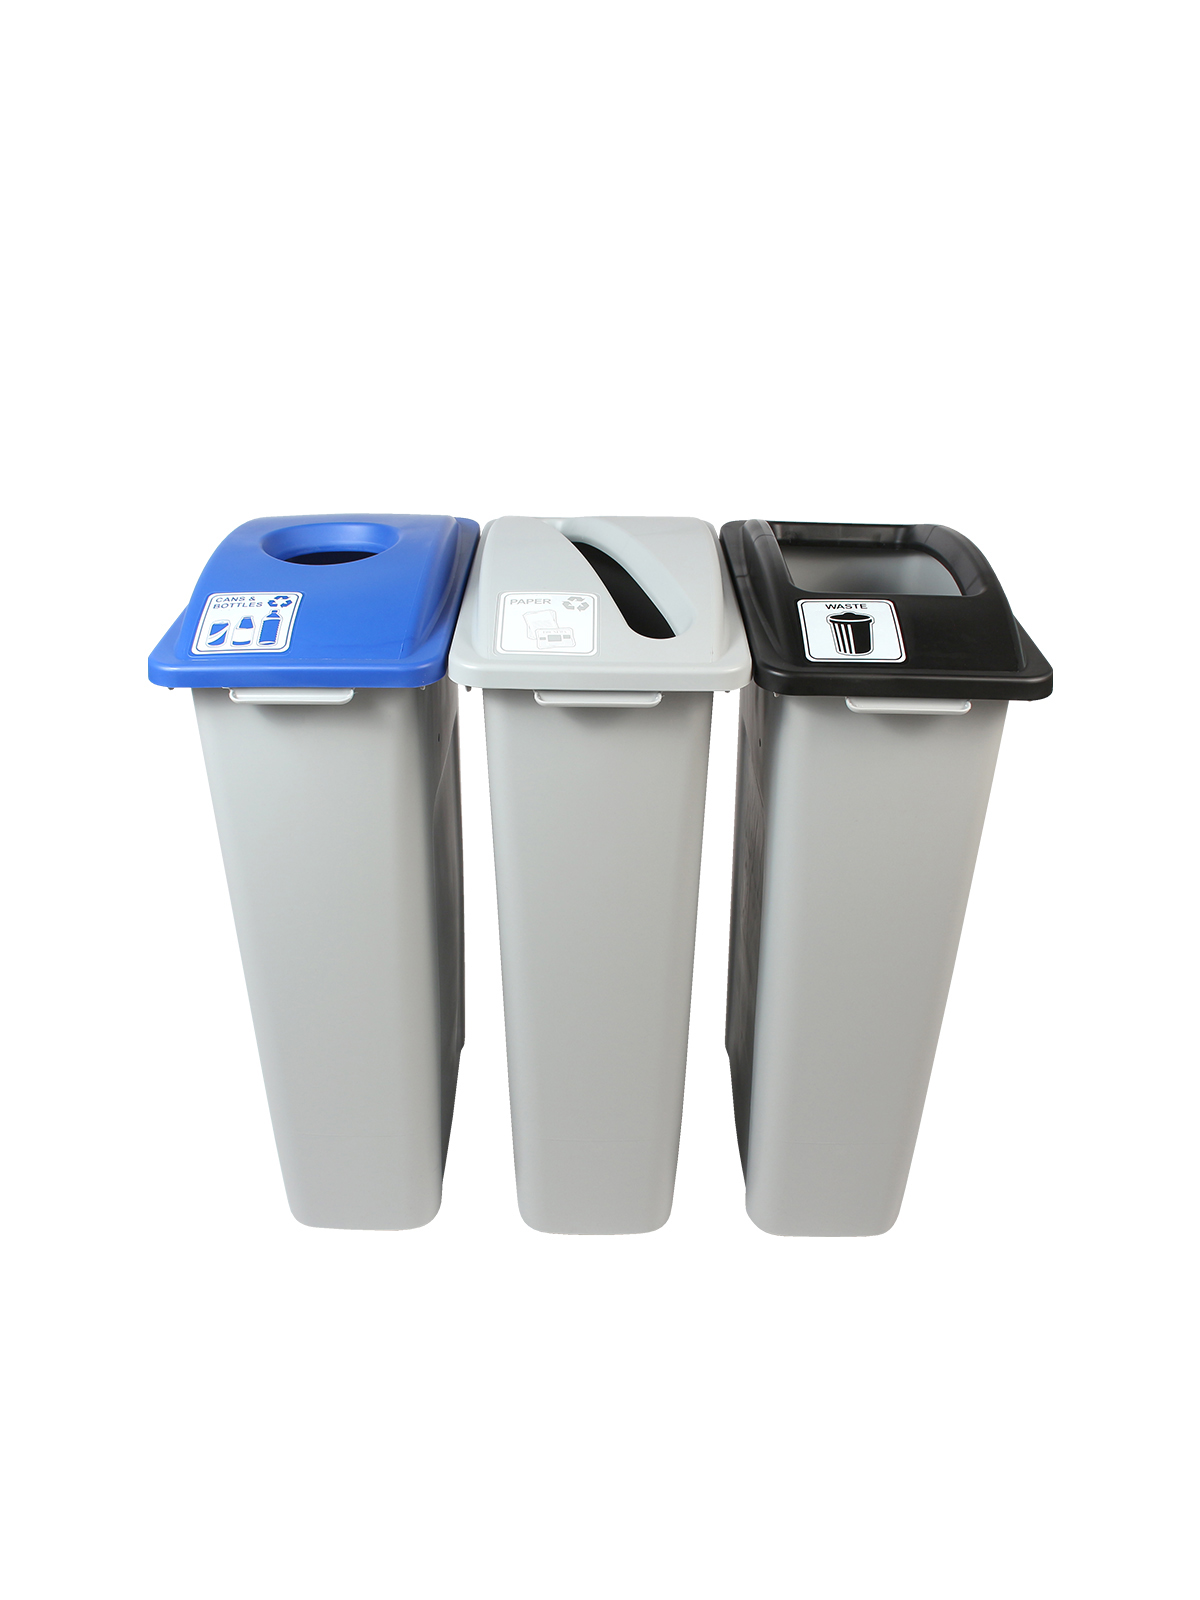 WASTE WATCHER - Triple - Cans & Bottles-Paper-Waste - Circle-Slot-Full - Grey-Blue-Grey-Black